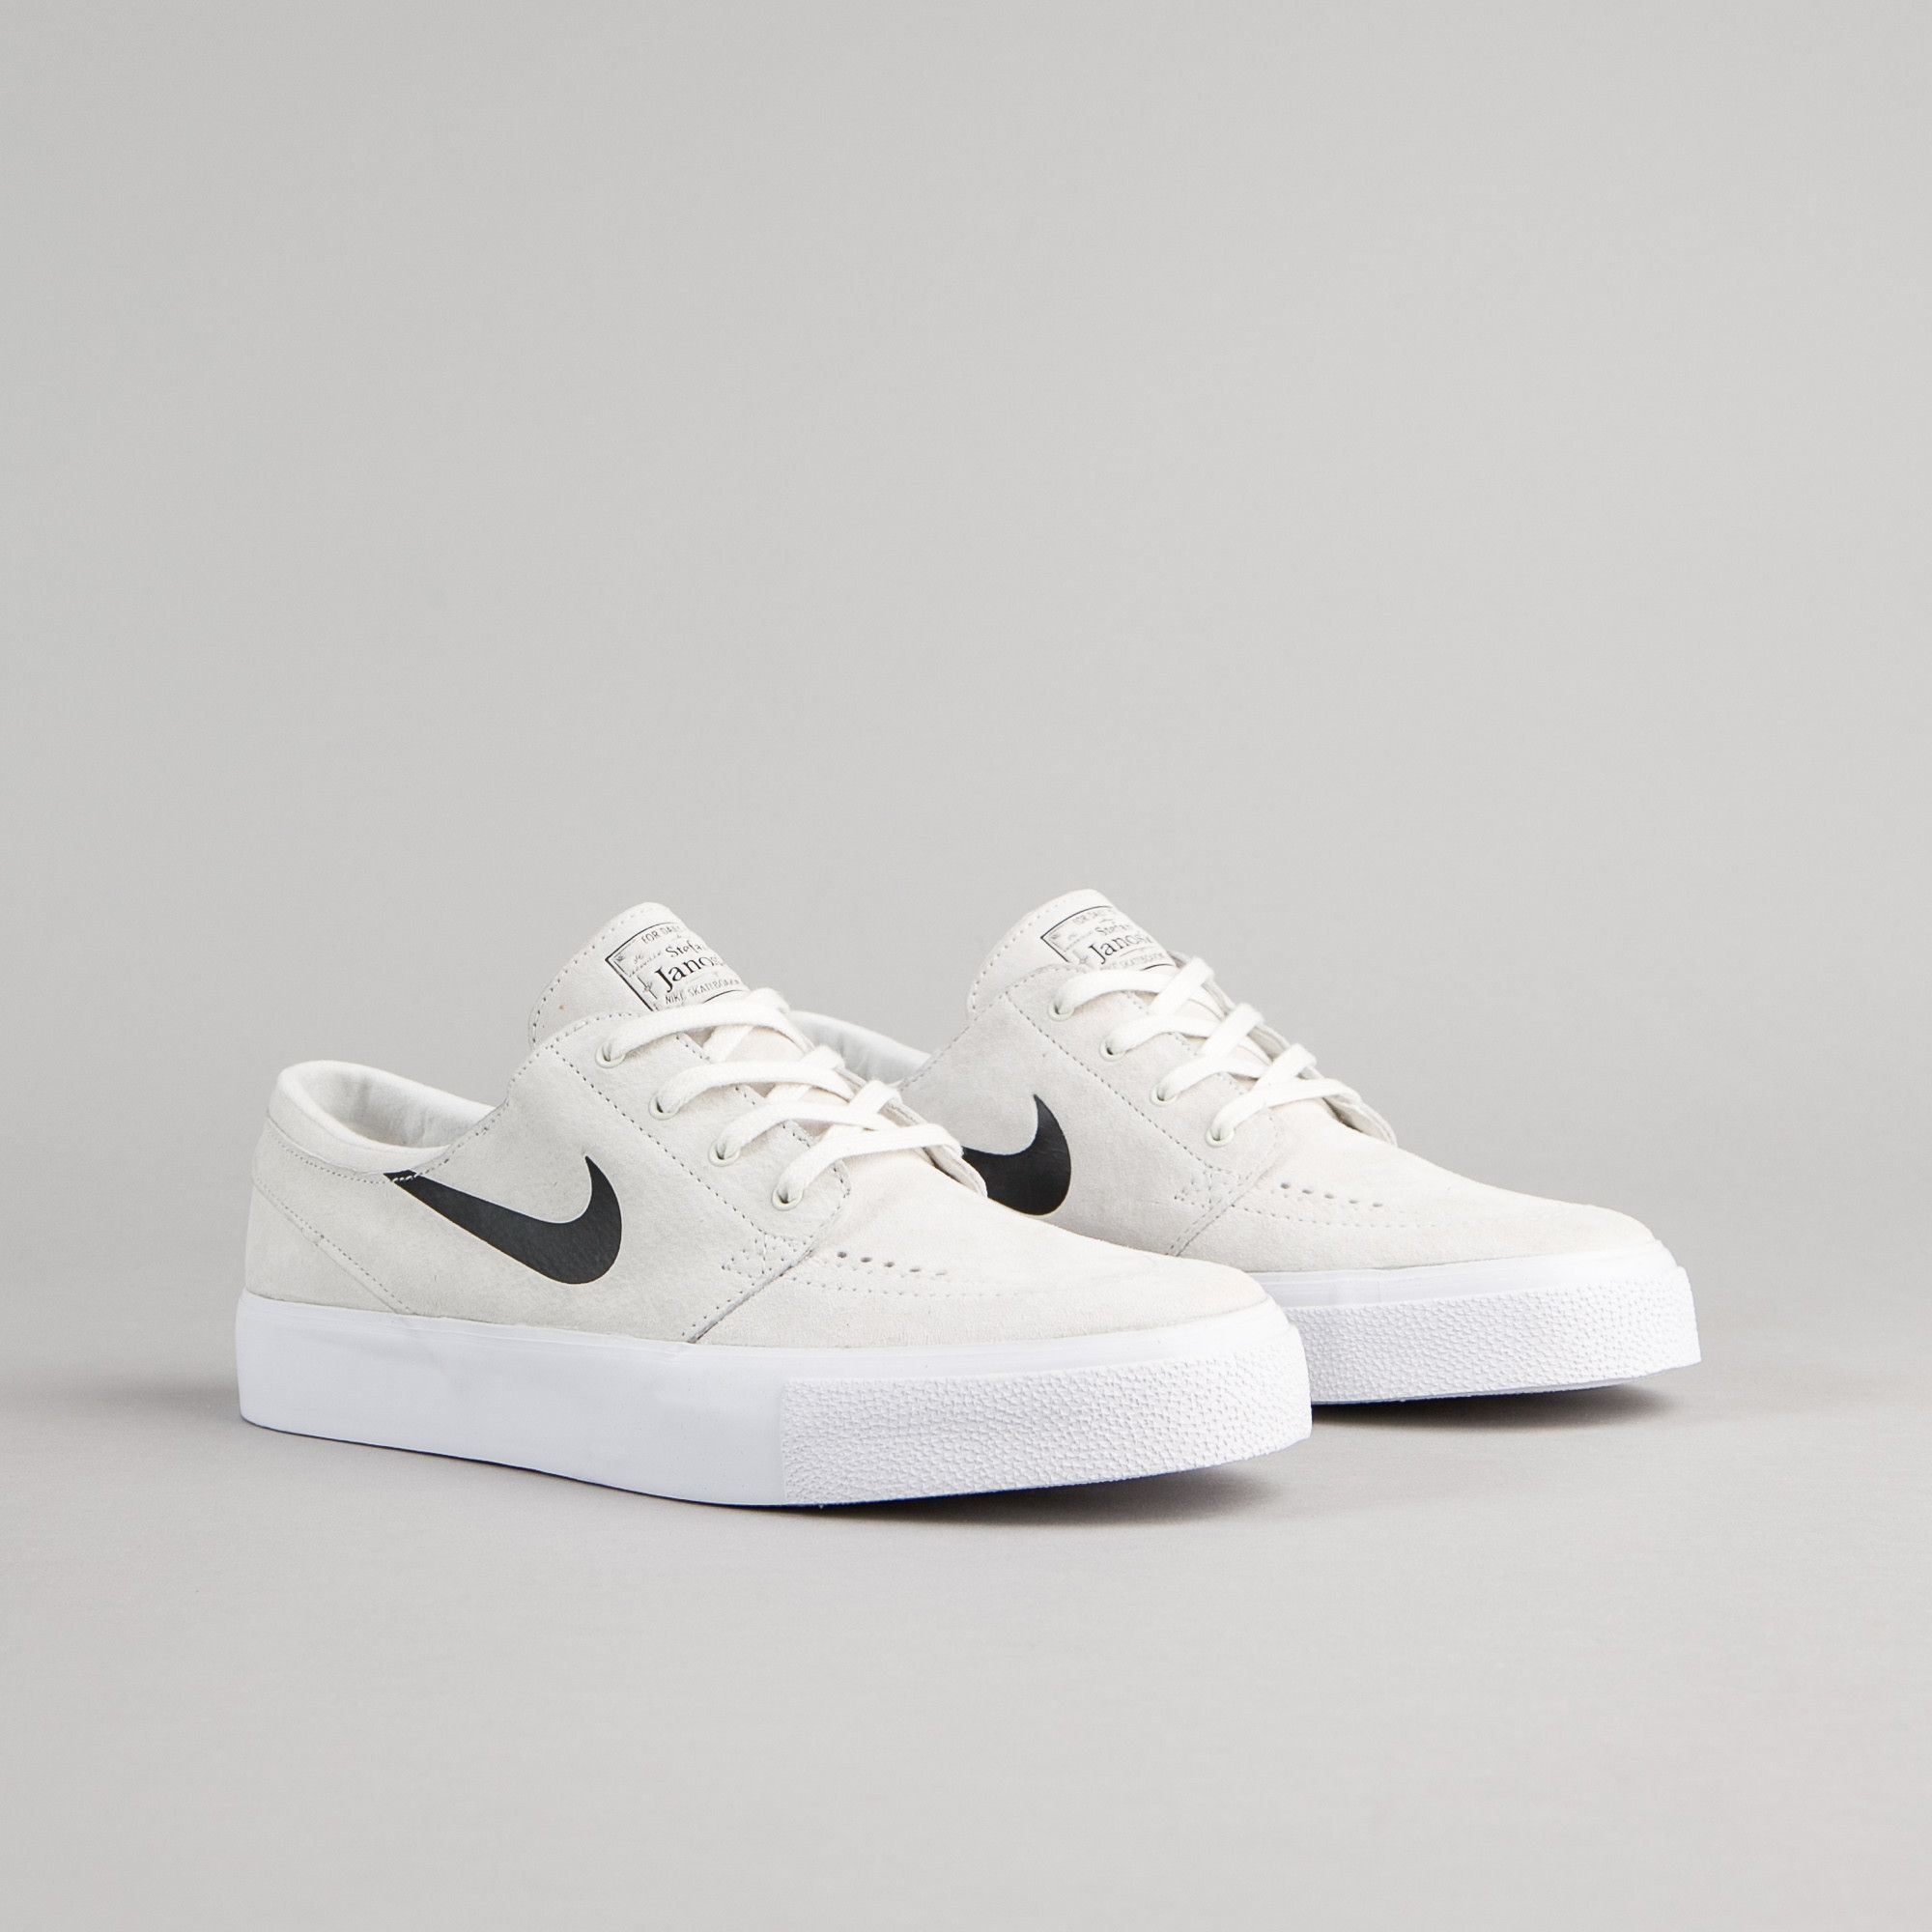 a874e12feb88 Nike SB Stefan Janoski HT Shoes - Summit White   Black